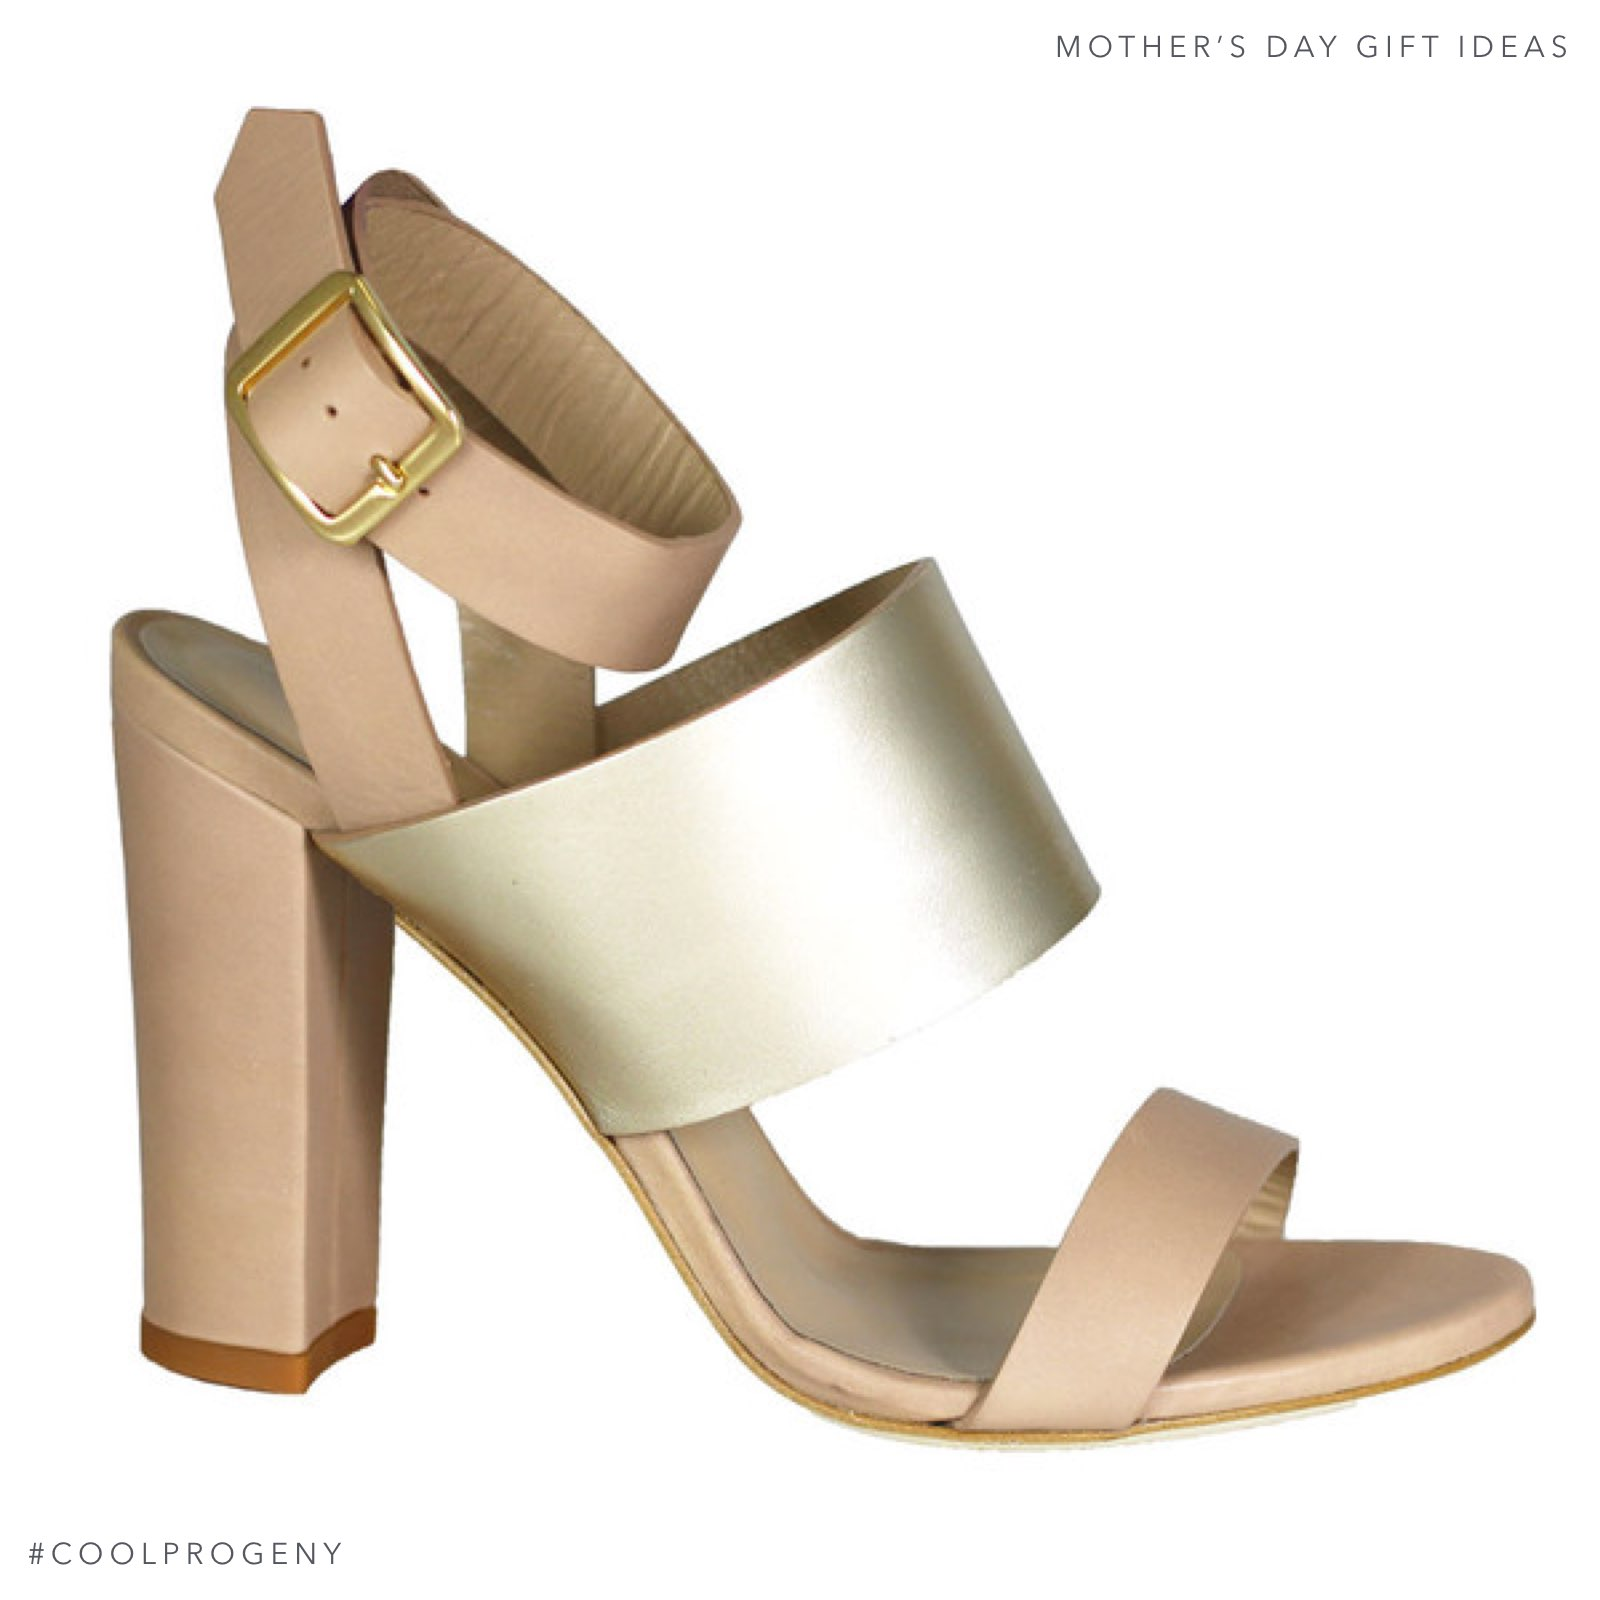 Mother's Day Gift Idea - (cool) progeny - Dee Keller heels, available from Sassanova